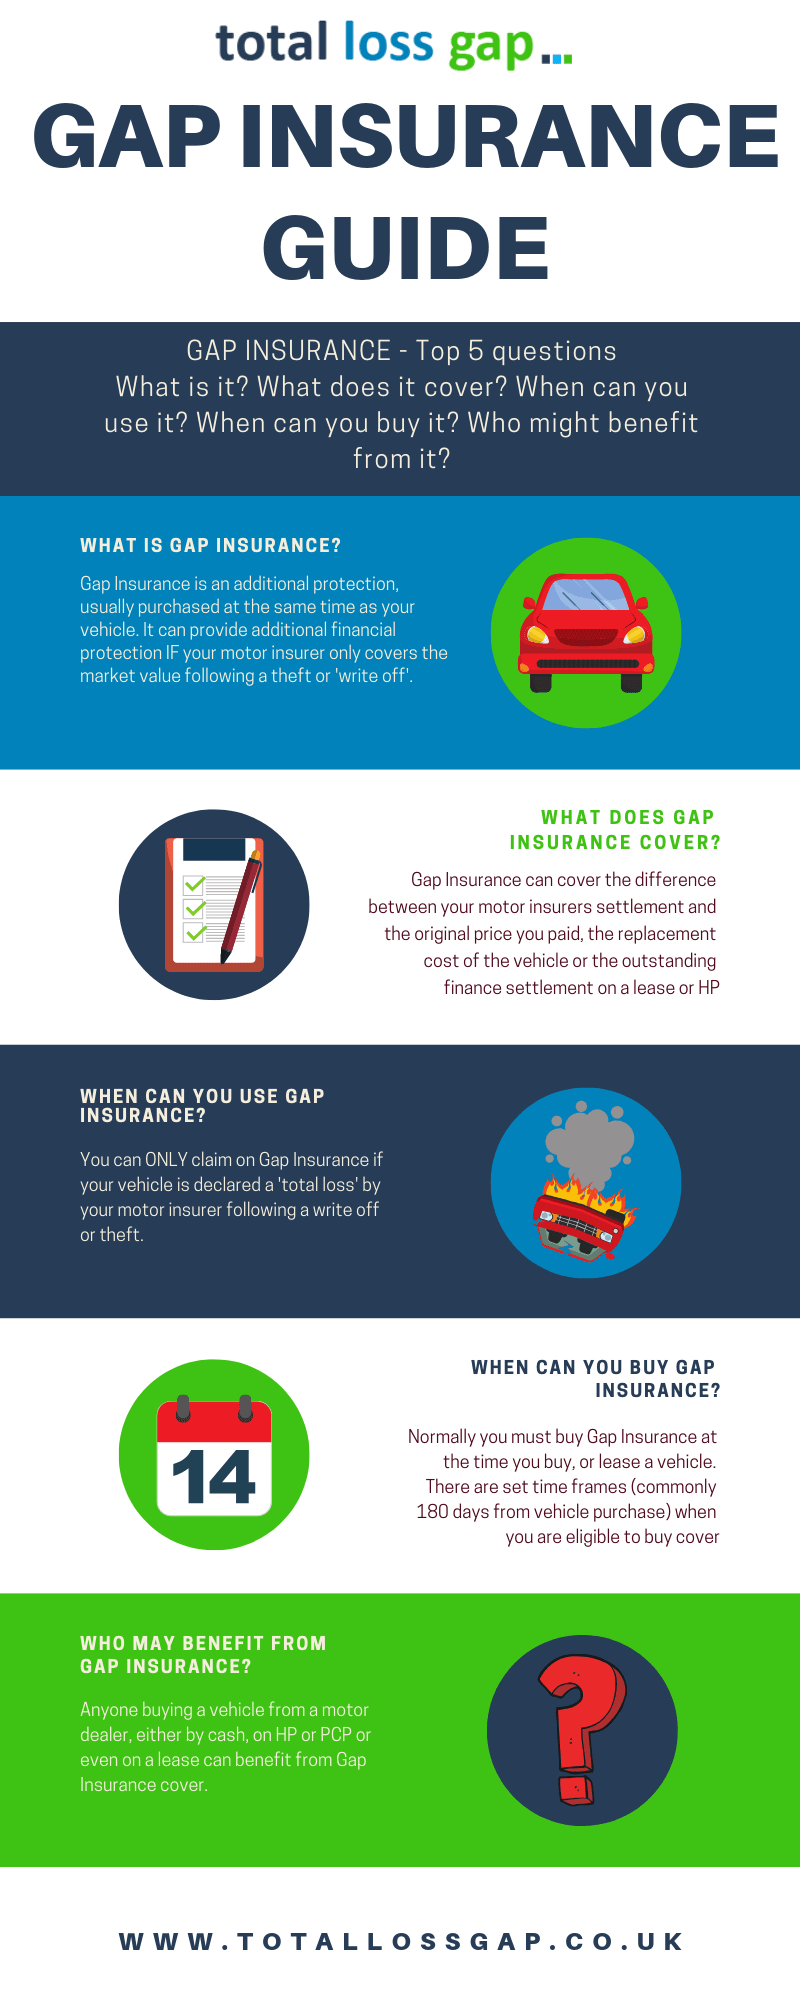 Gap Insurance - Explained in a Complete Guide | TotalLossGap